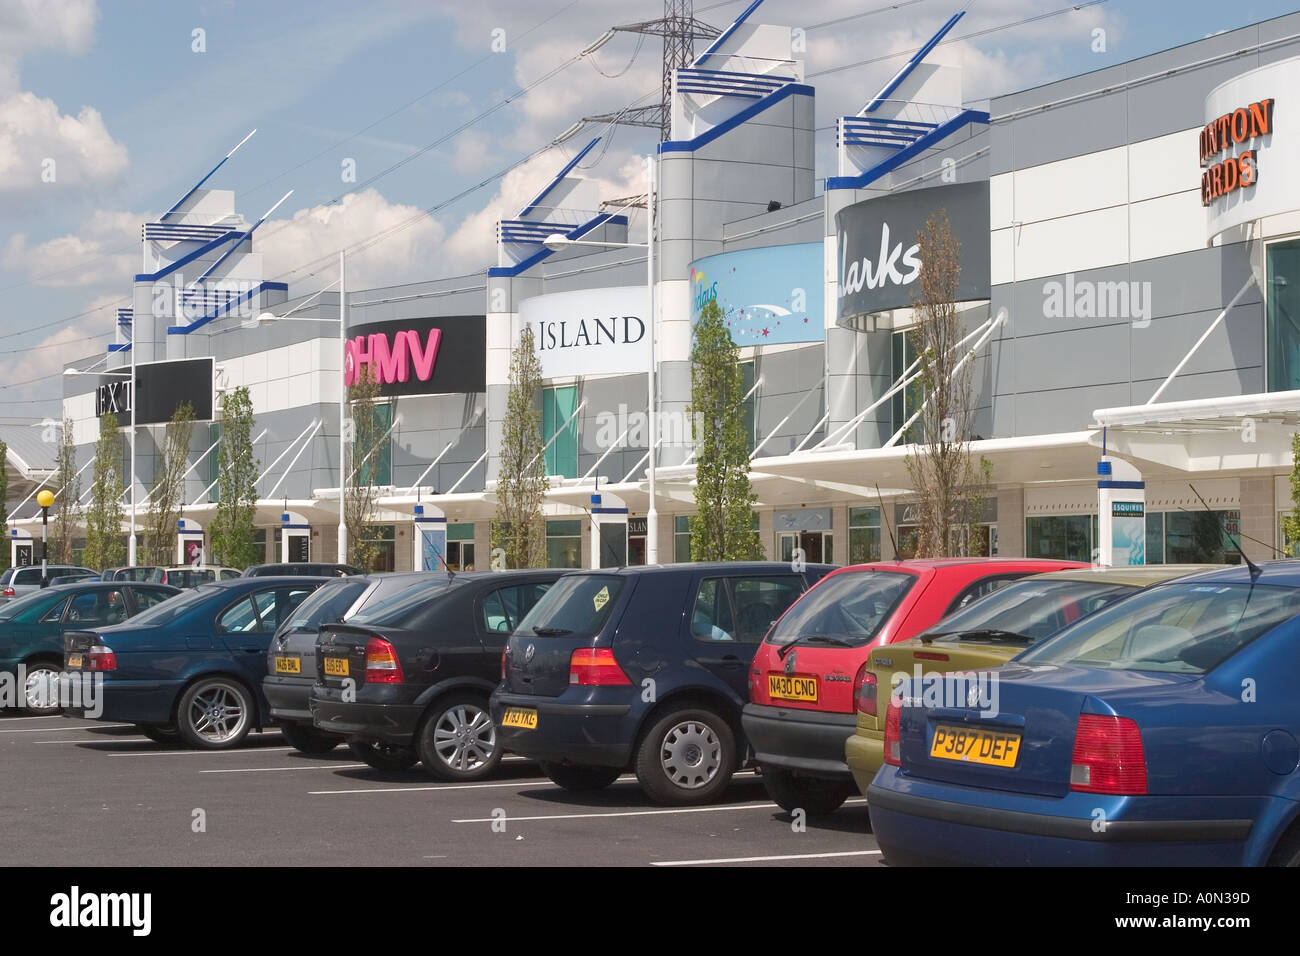 Find Shopping Centres in East Beckton, get reviews, directions, opening hours and payment details. Search for Shopping Centres and other retailers near you, and submit a review on makeshop-zpnxx1b0.cf